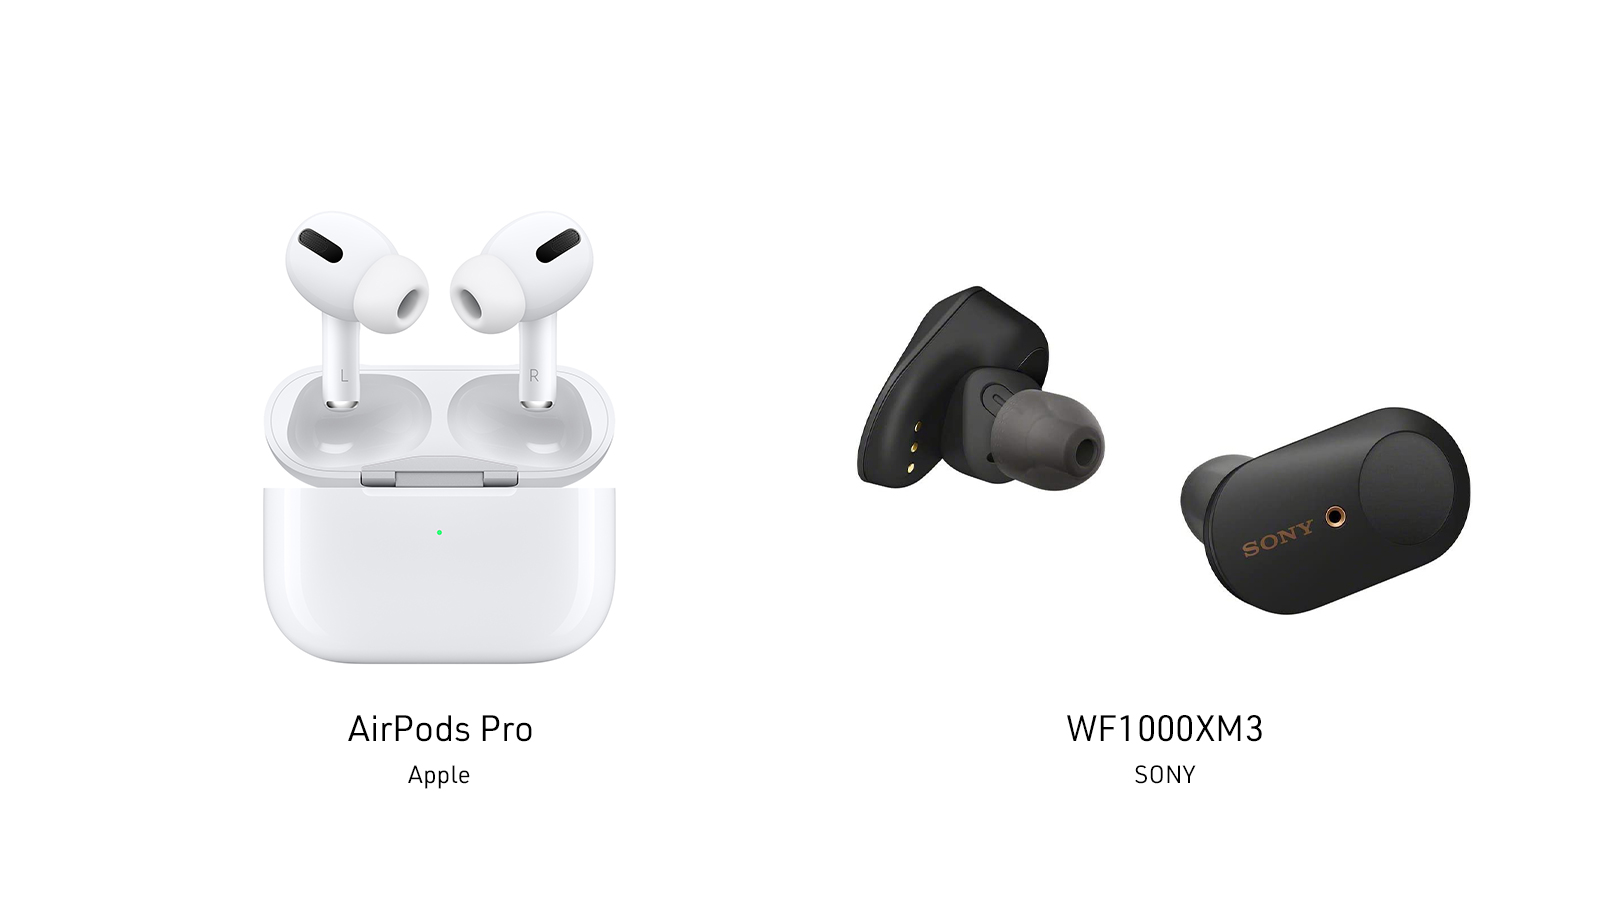 Apple AirPods ProとSONY WF-1000XM3